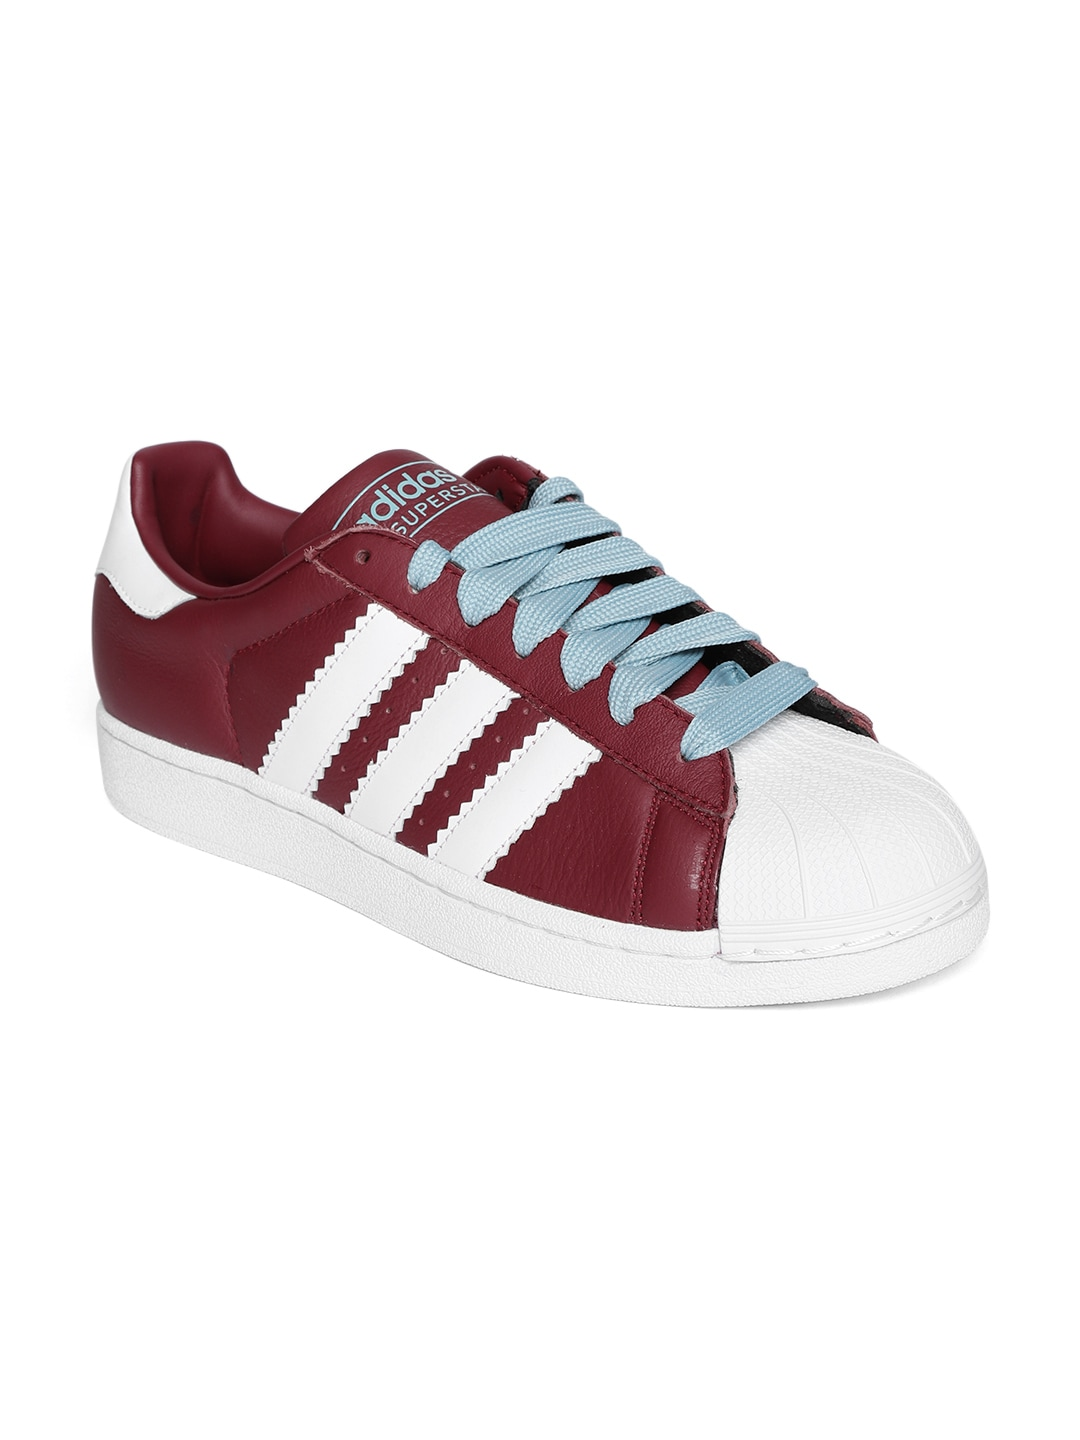 size 40 6d03a ddbe5 Adidas Superstar Shoes - Buy Adidas Superstar Shoes Online -